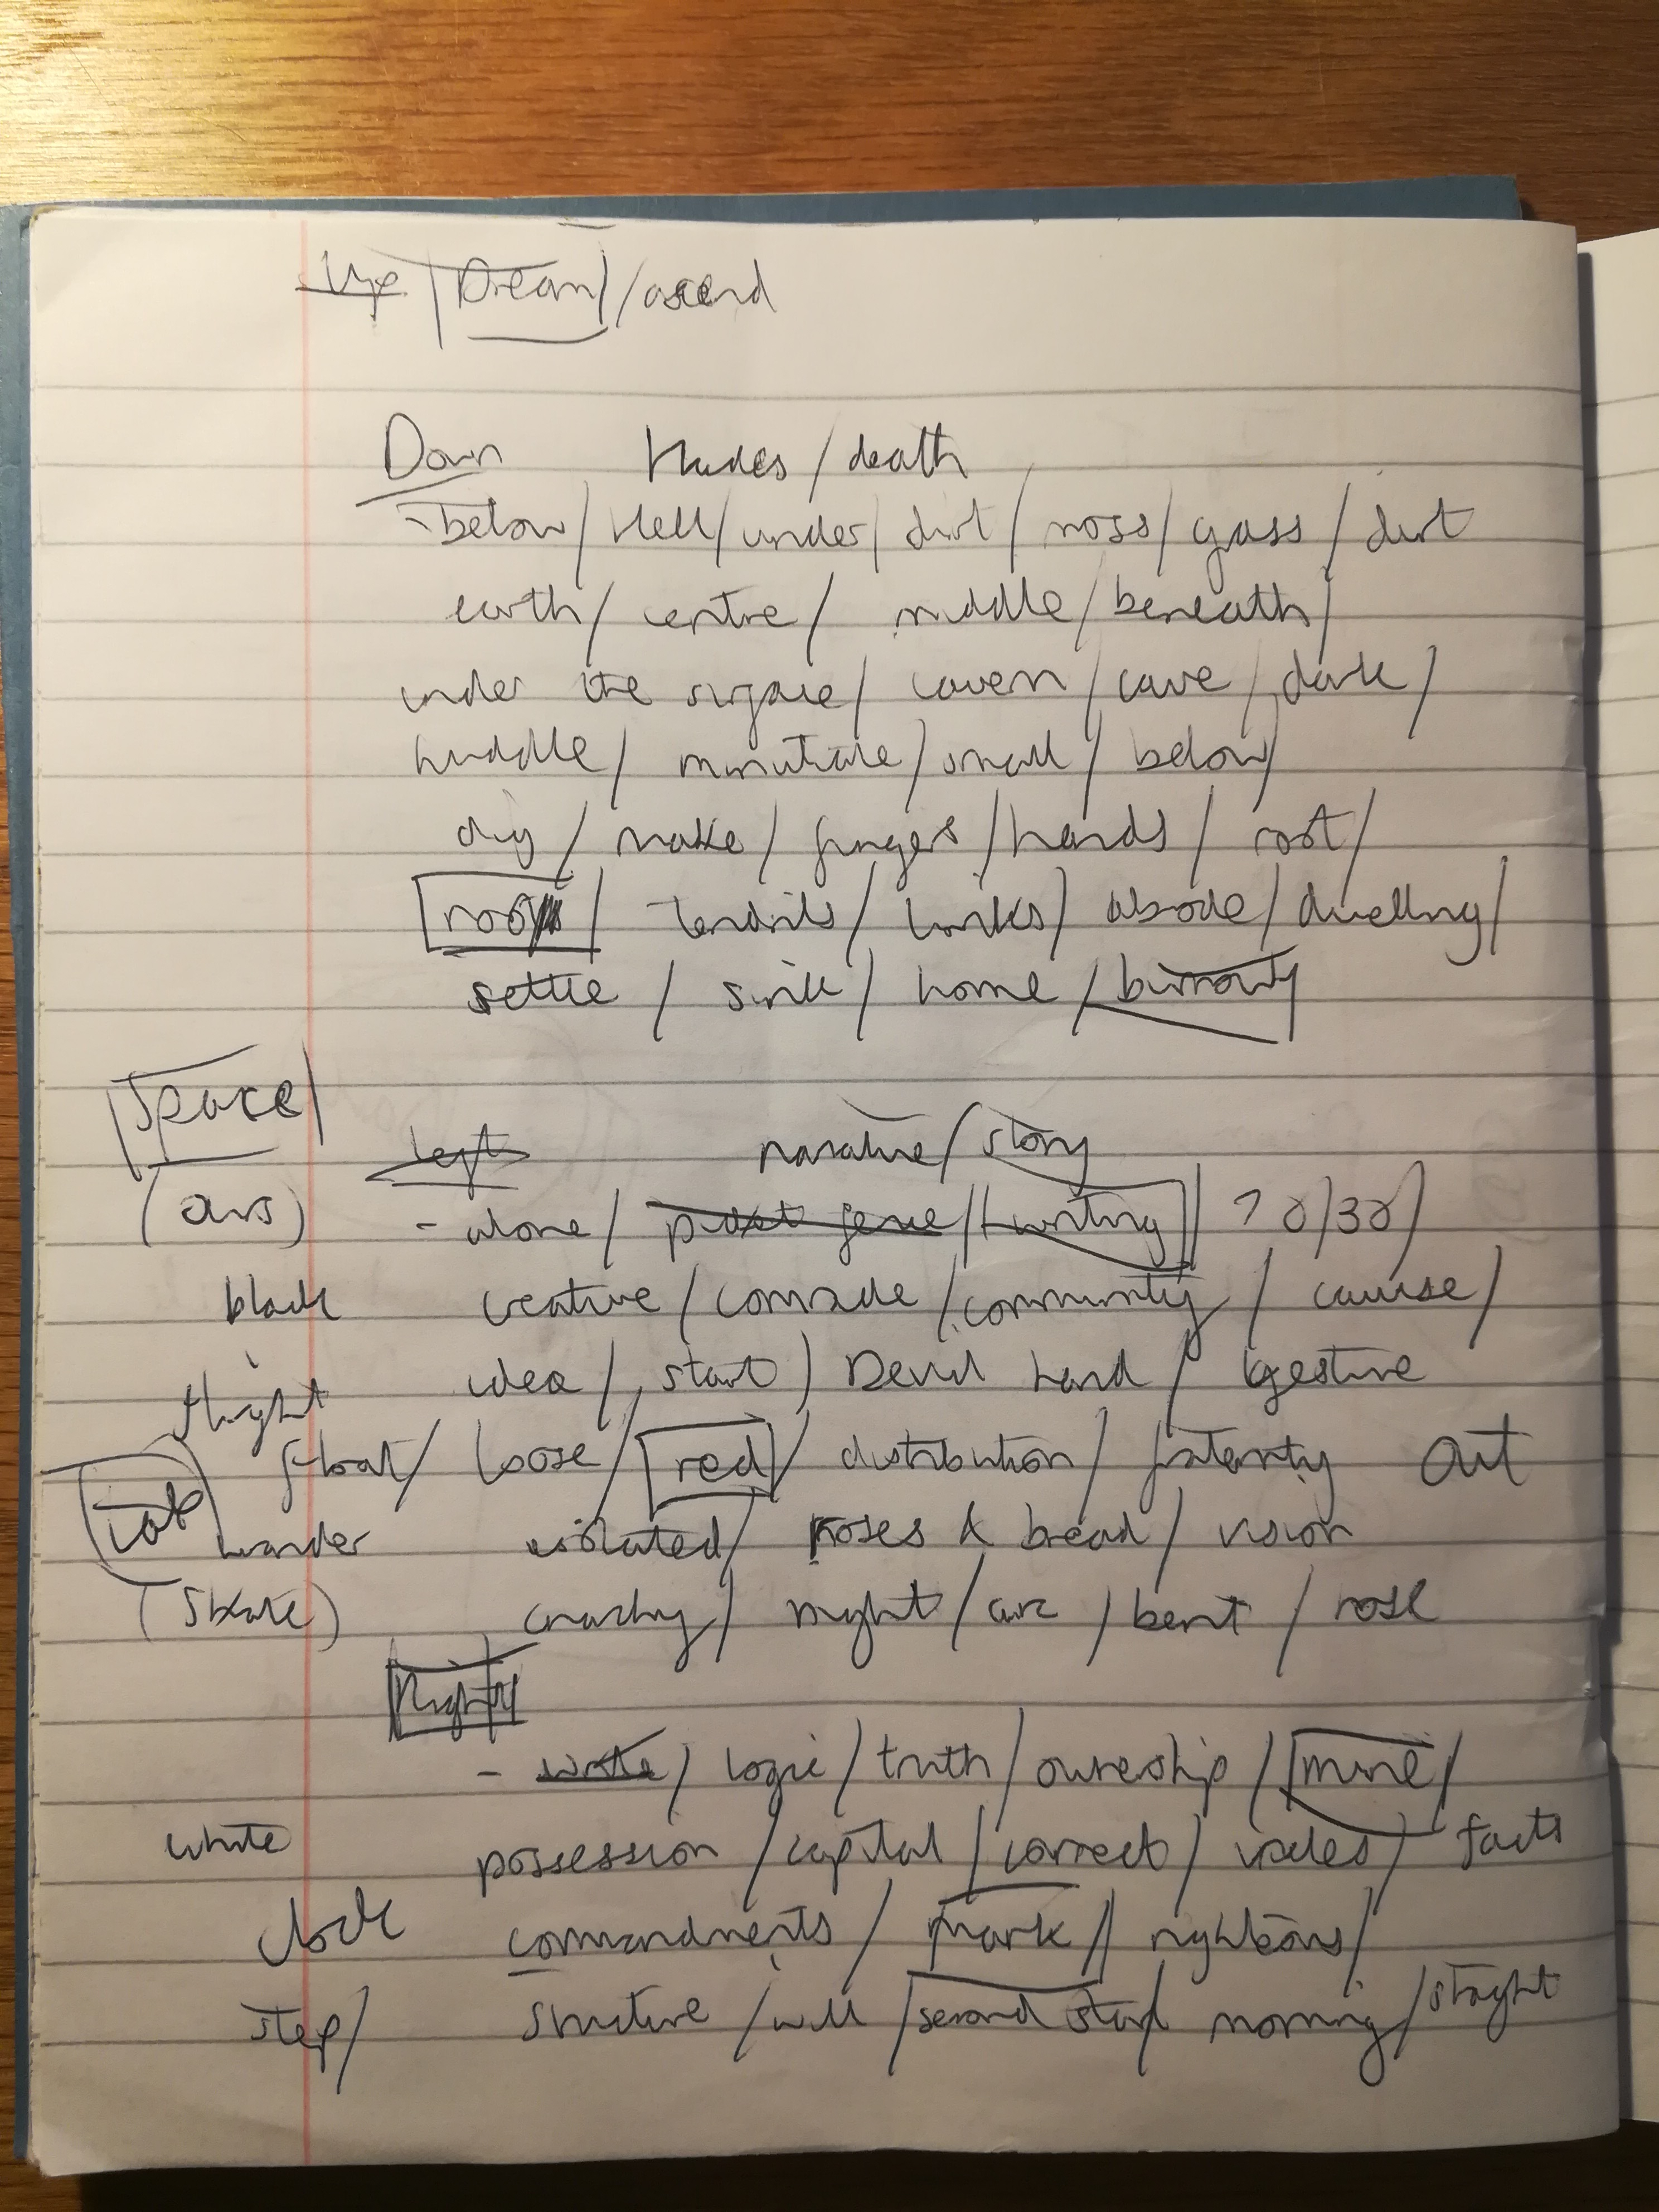 Creating ideas for your poem...